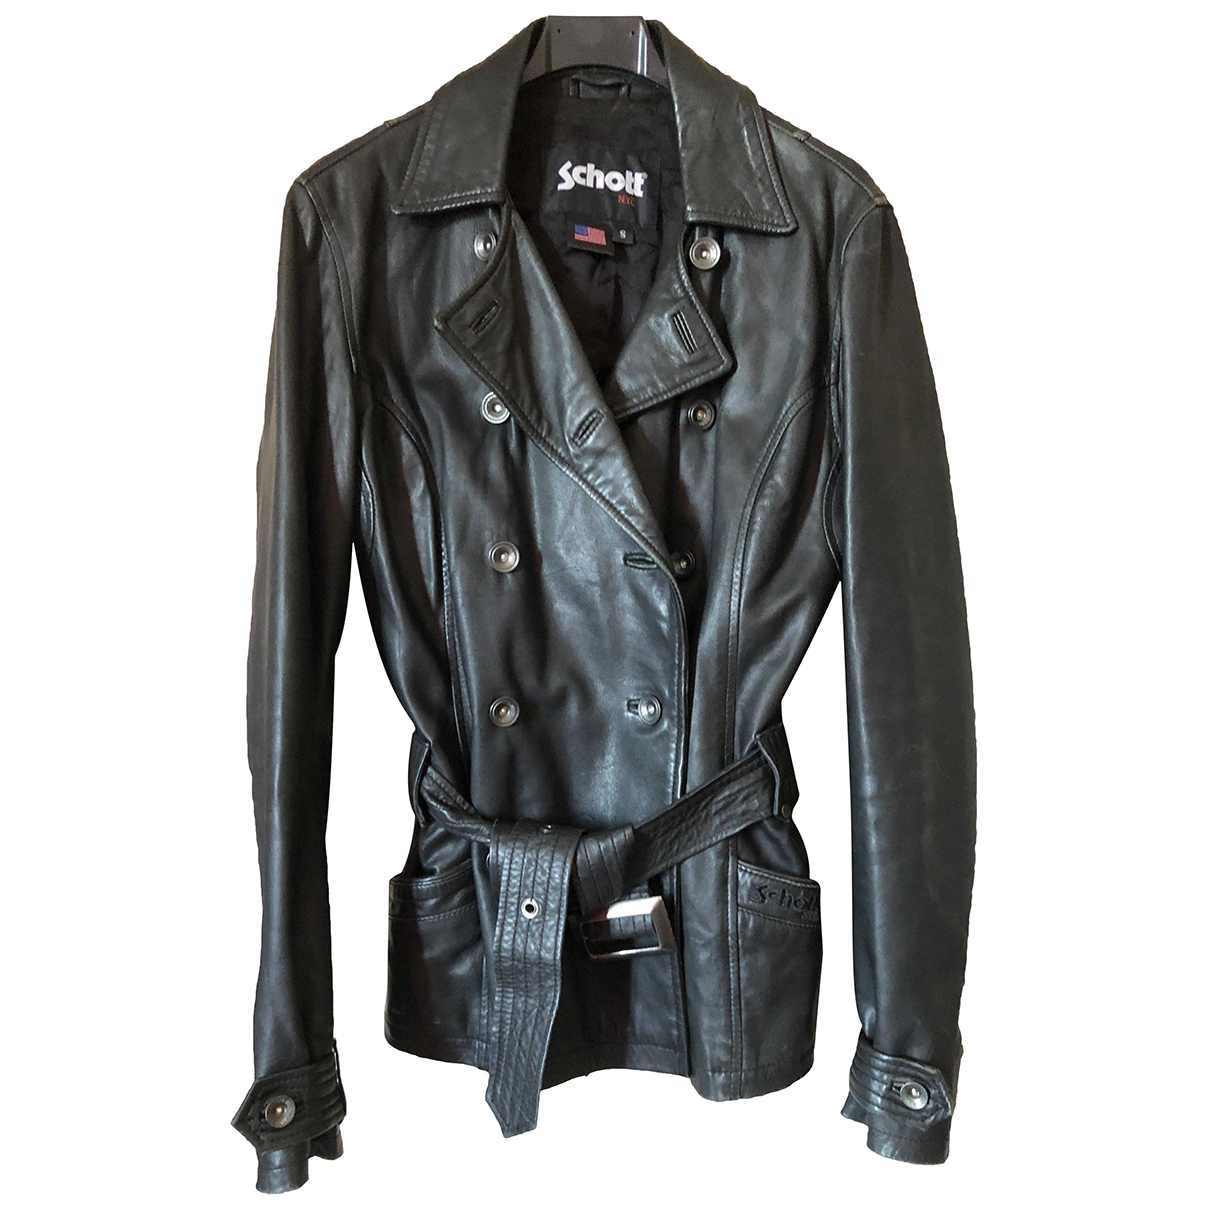 Schott \N Black Leather jacket for Women 36 FR